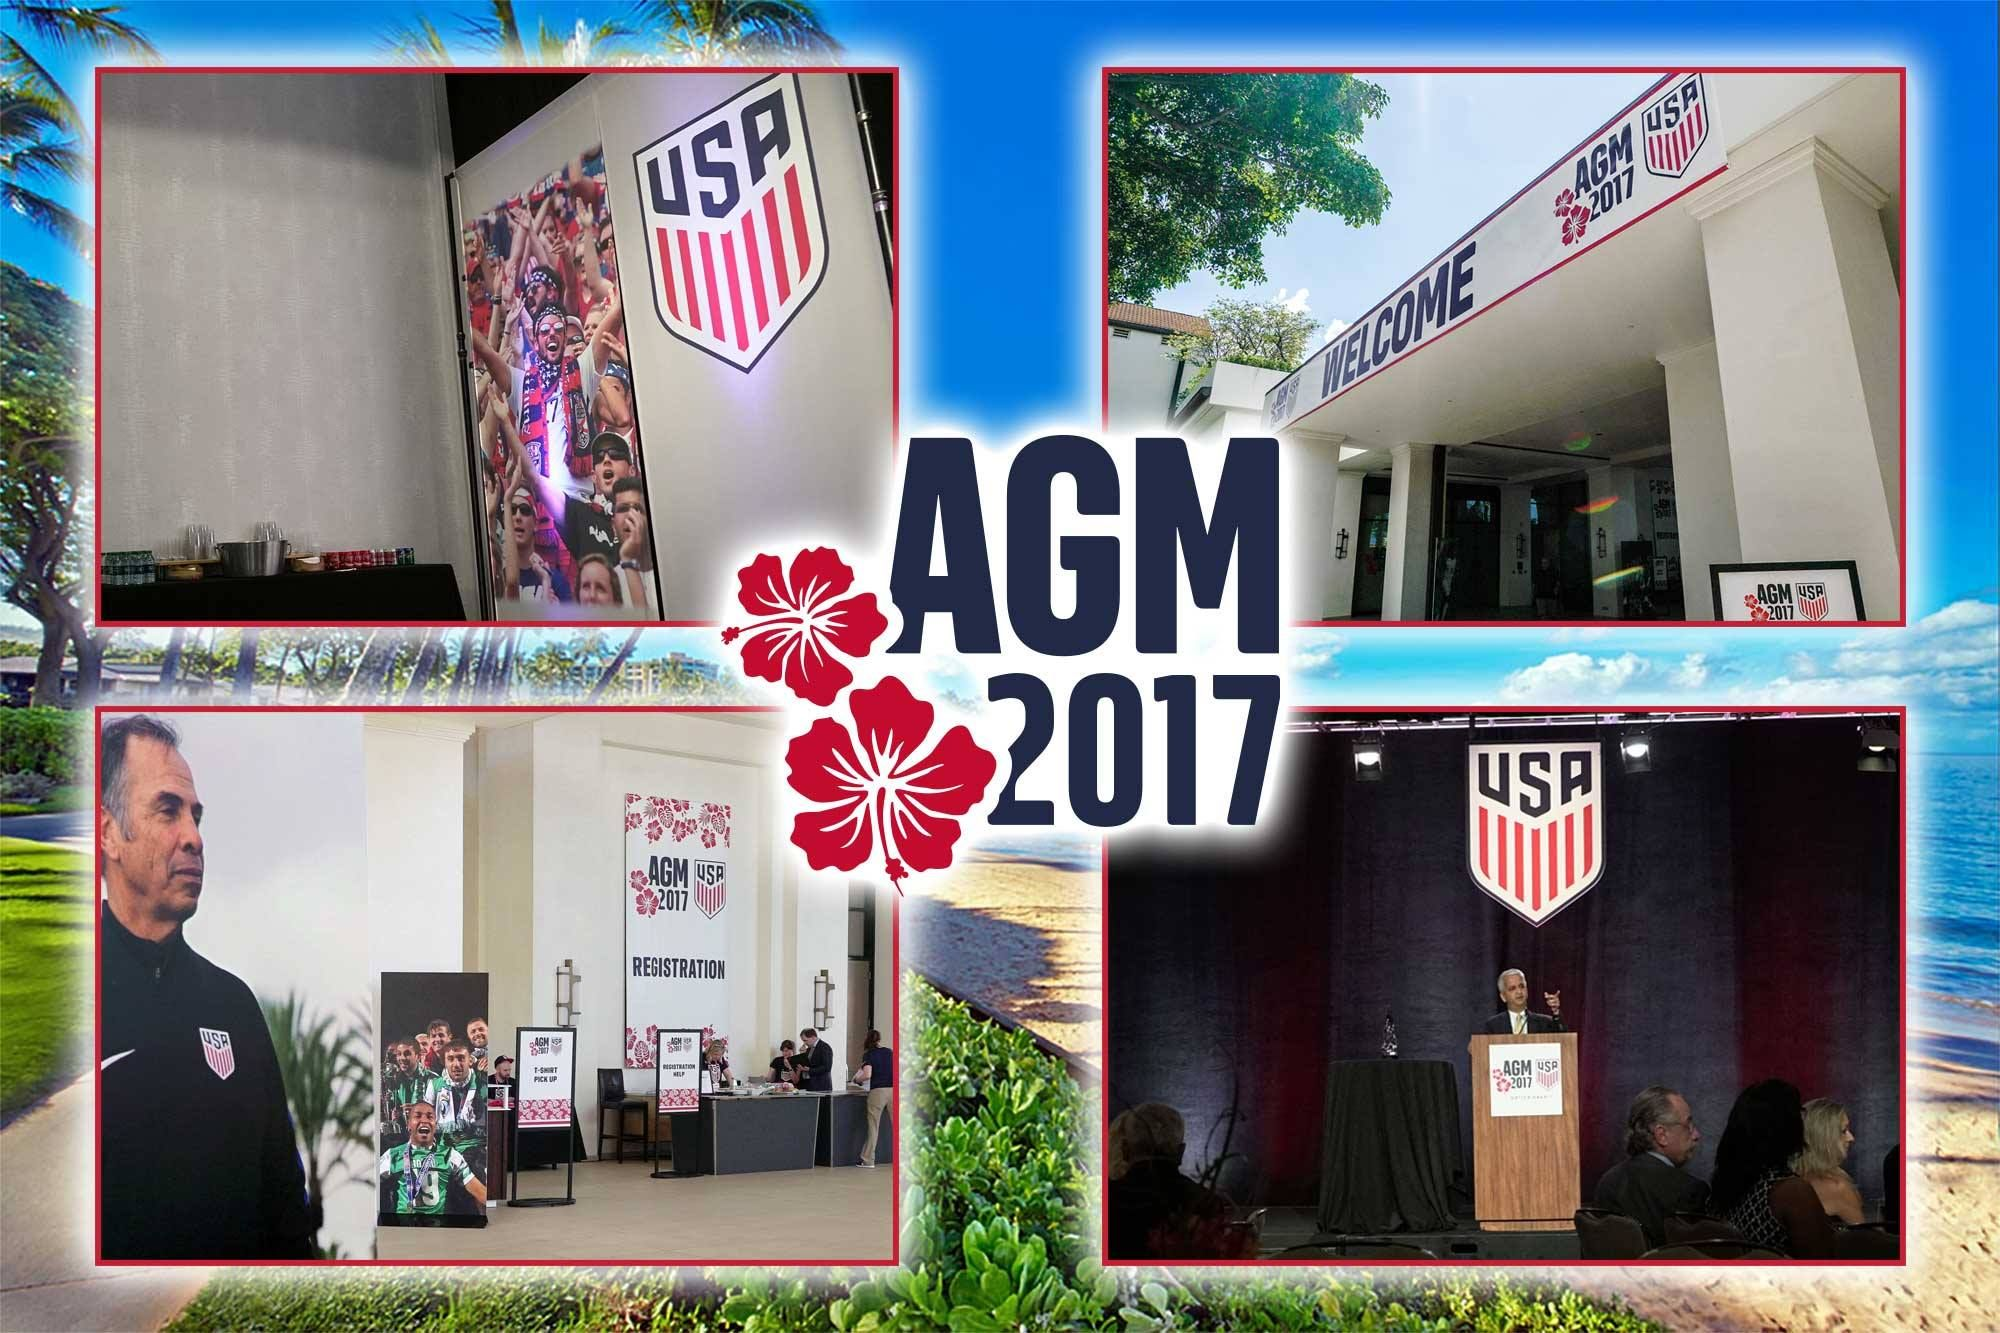 How do you make your event a success? According to Events Manager, you've got to pick the right team! That said, we were thrilled to be the graphics partner for the 2017 U.S. Soccer Annual General Meeting in Wailea, Hawaii.